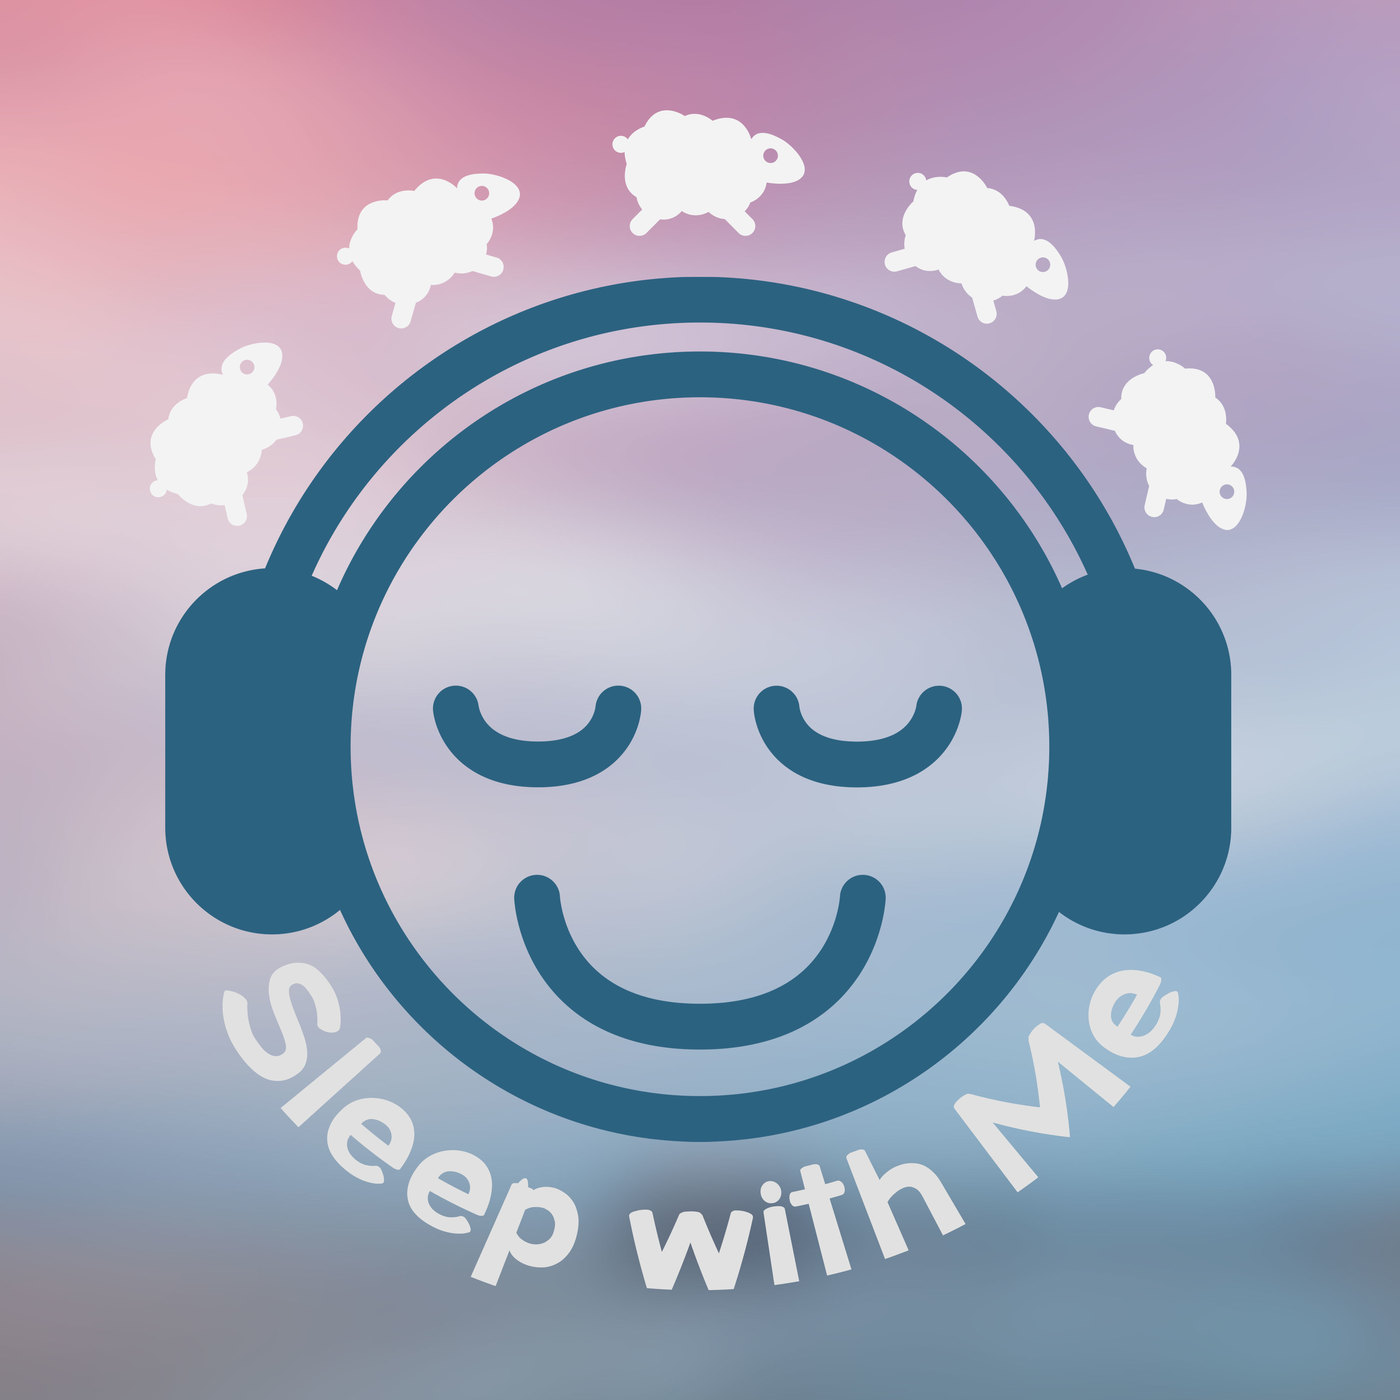 800 - Sleep via AMA